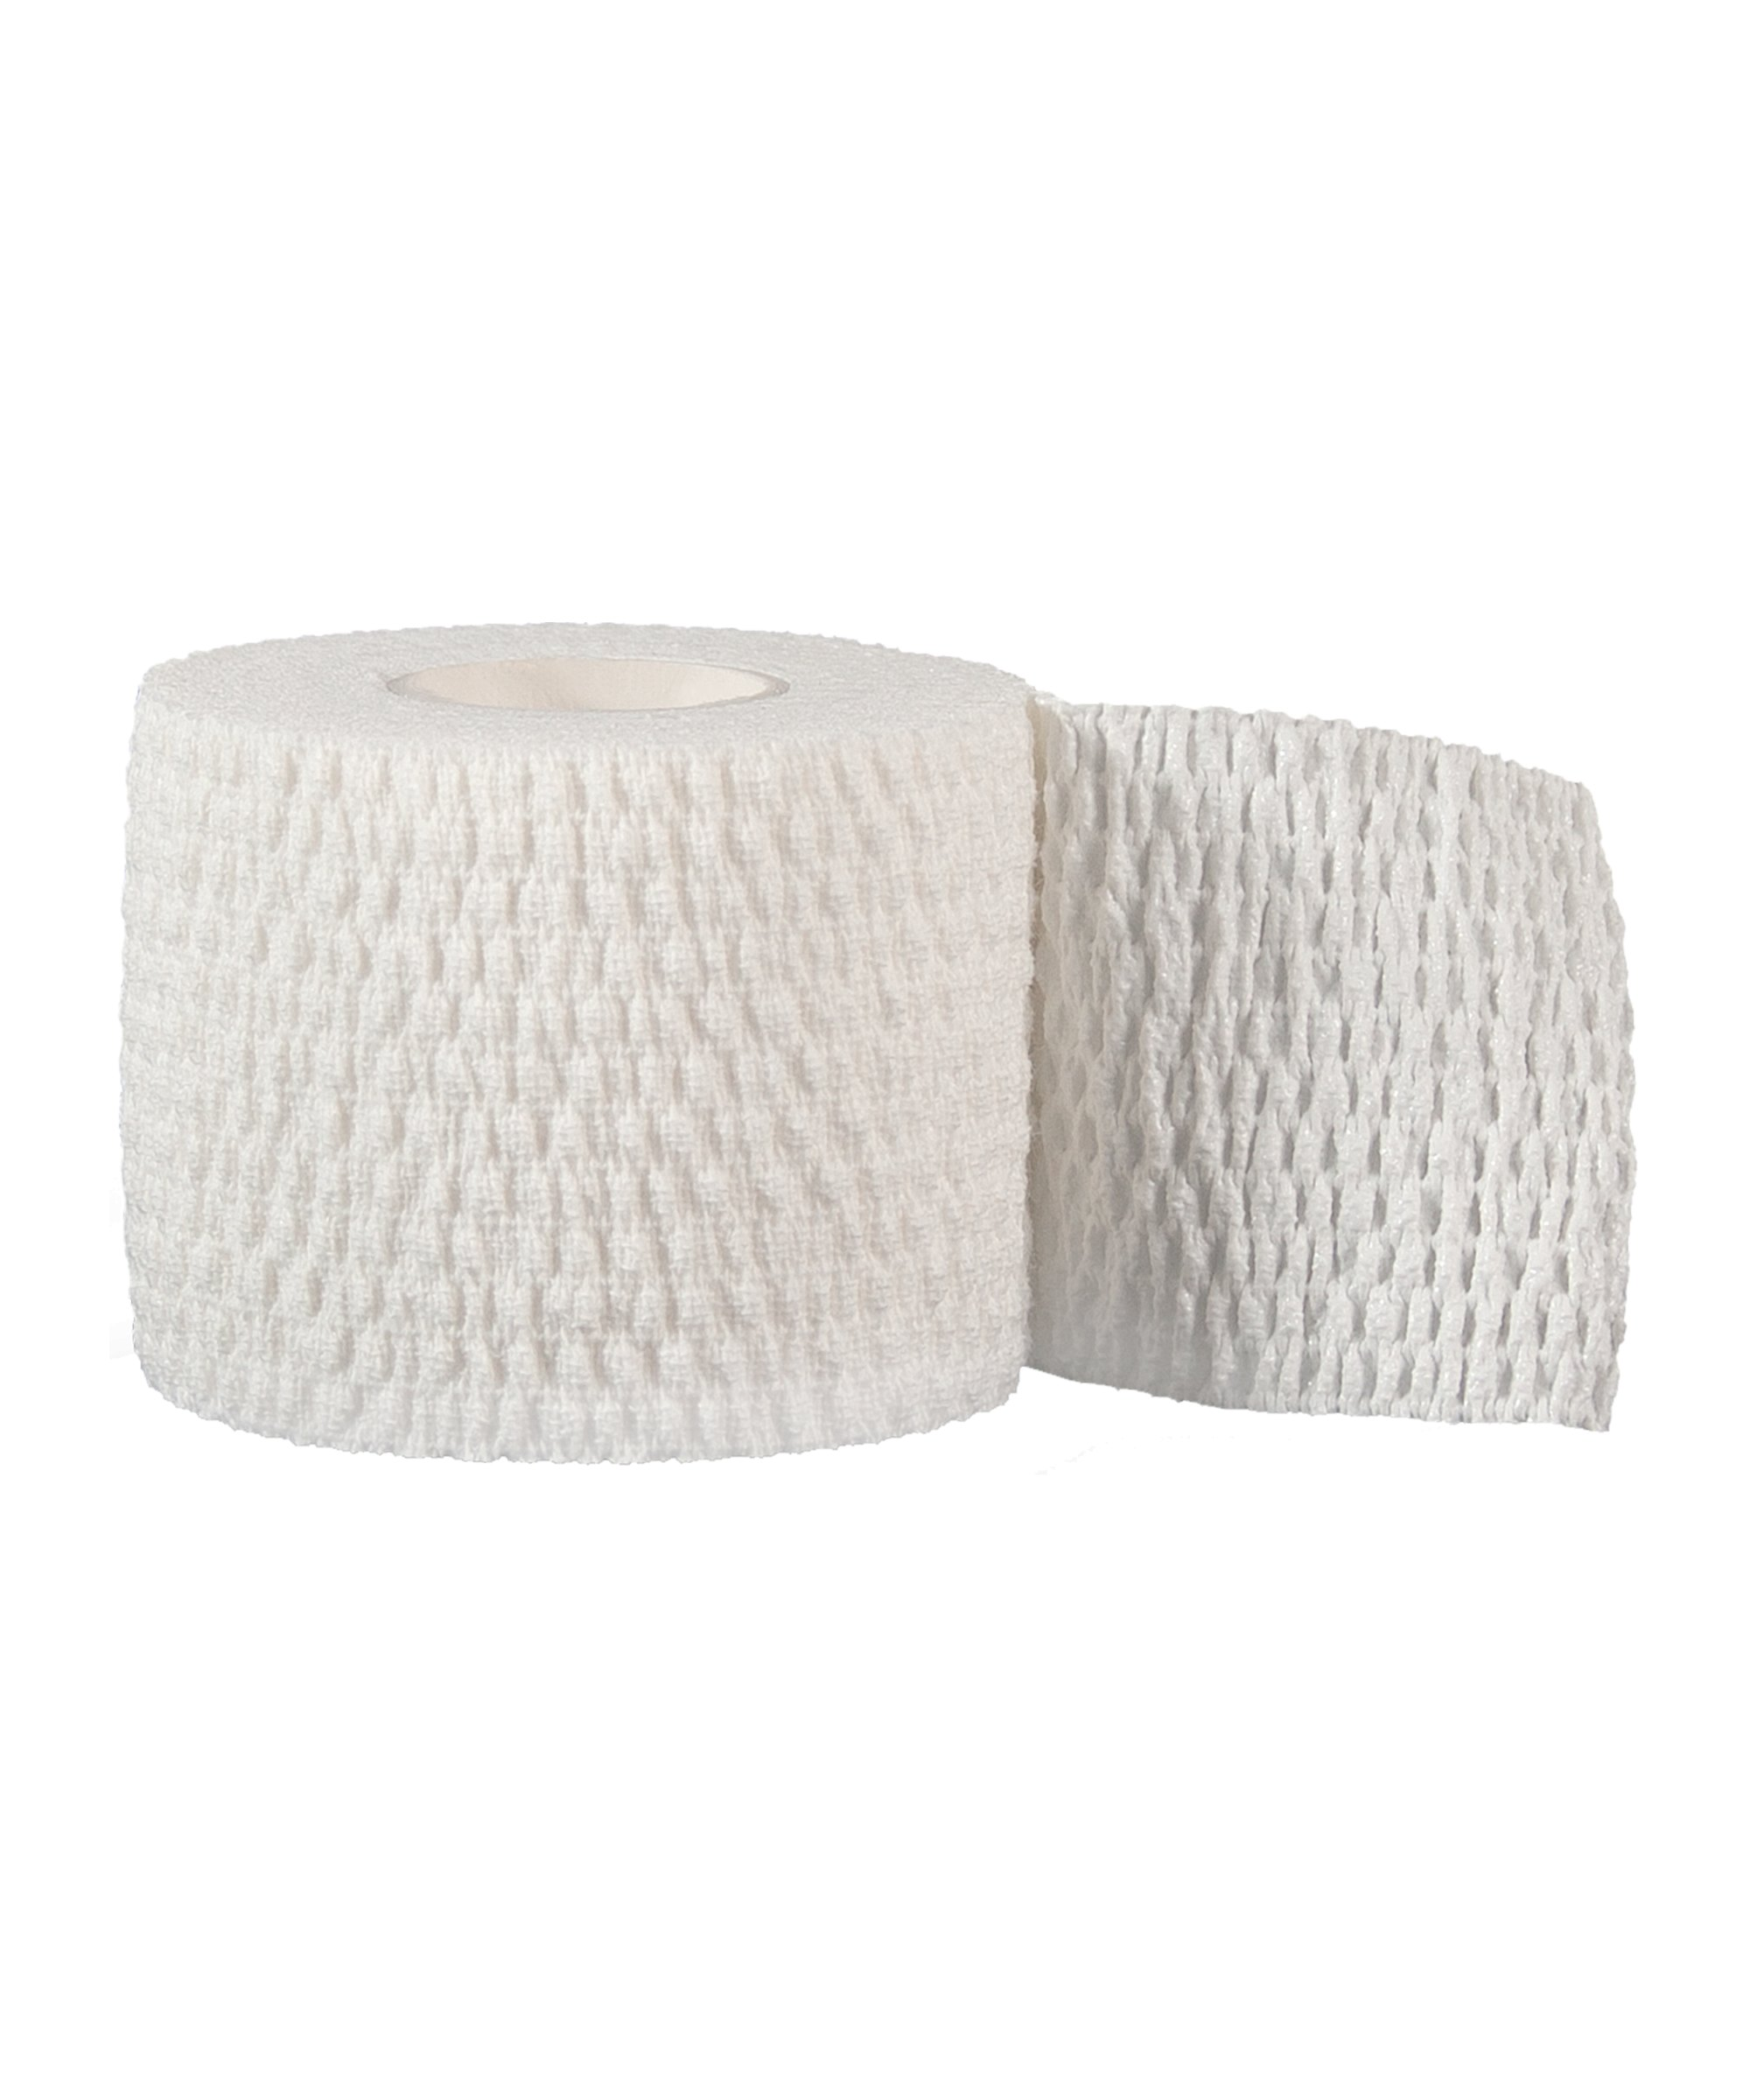 Select Stretch Tape 7,5cm x 6,9m Weiss F000 - weiss